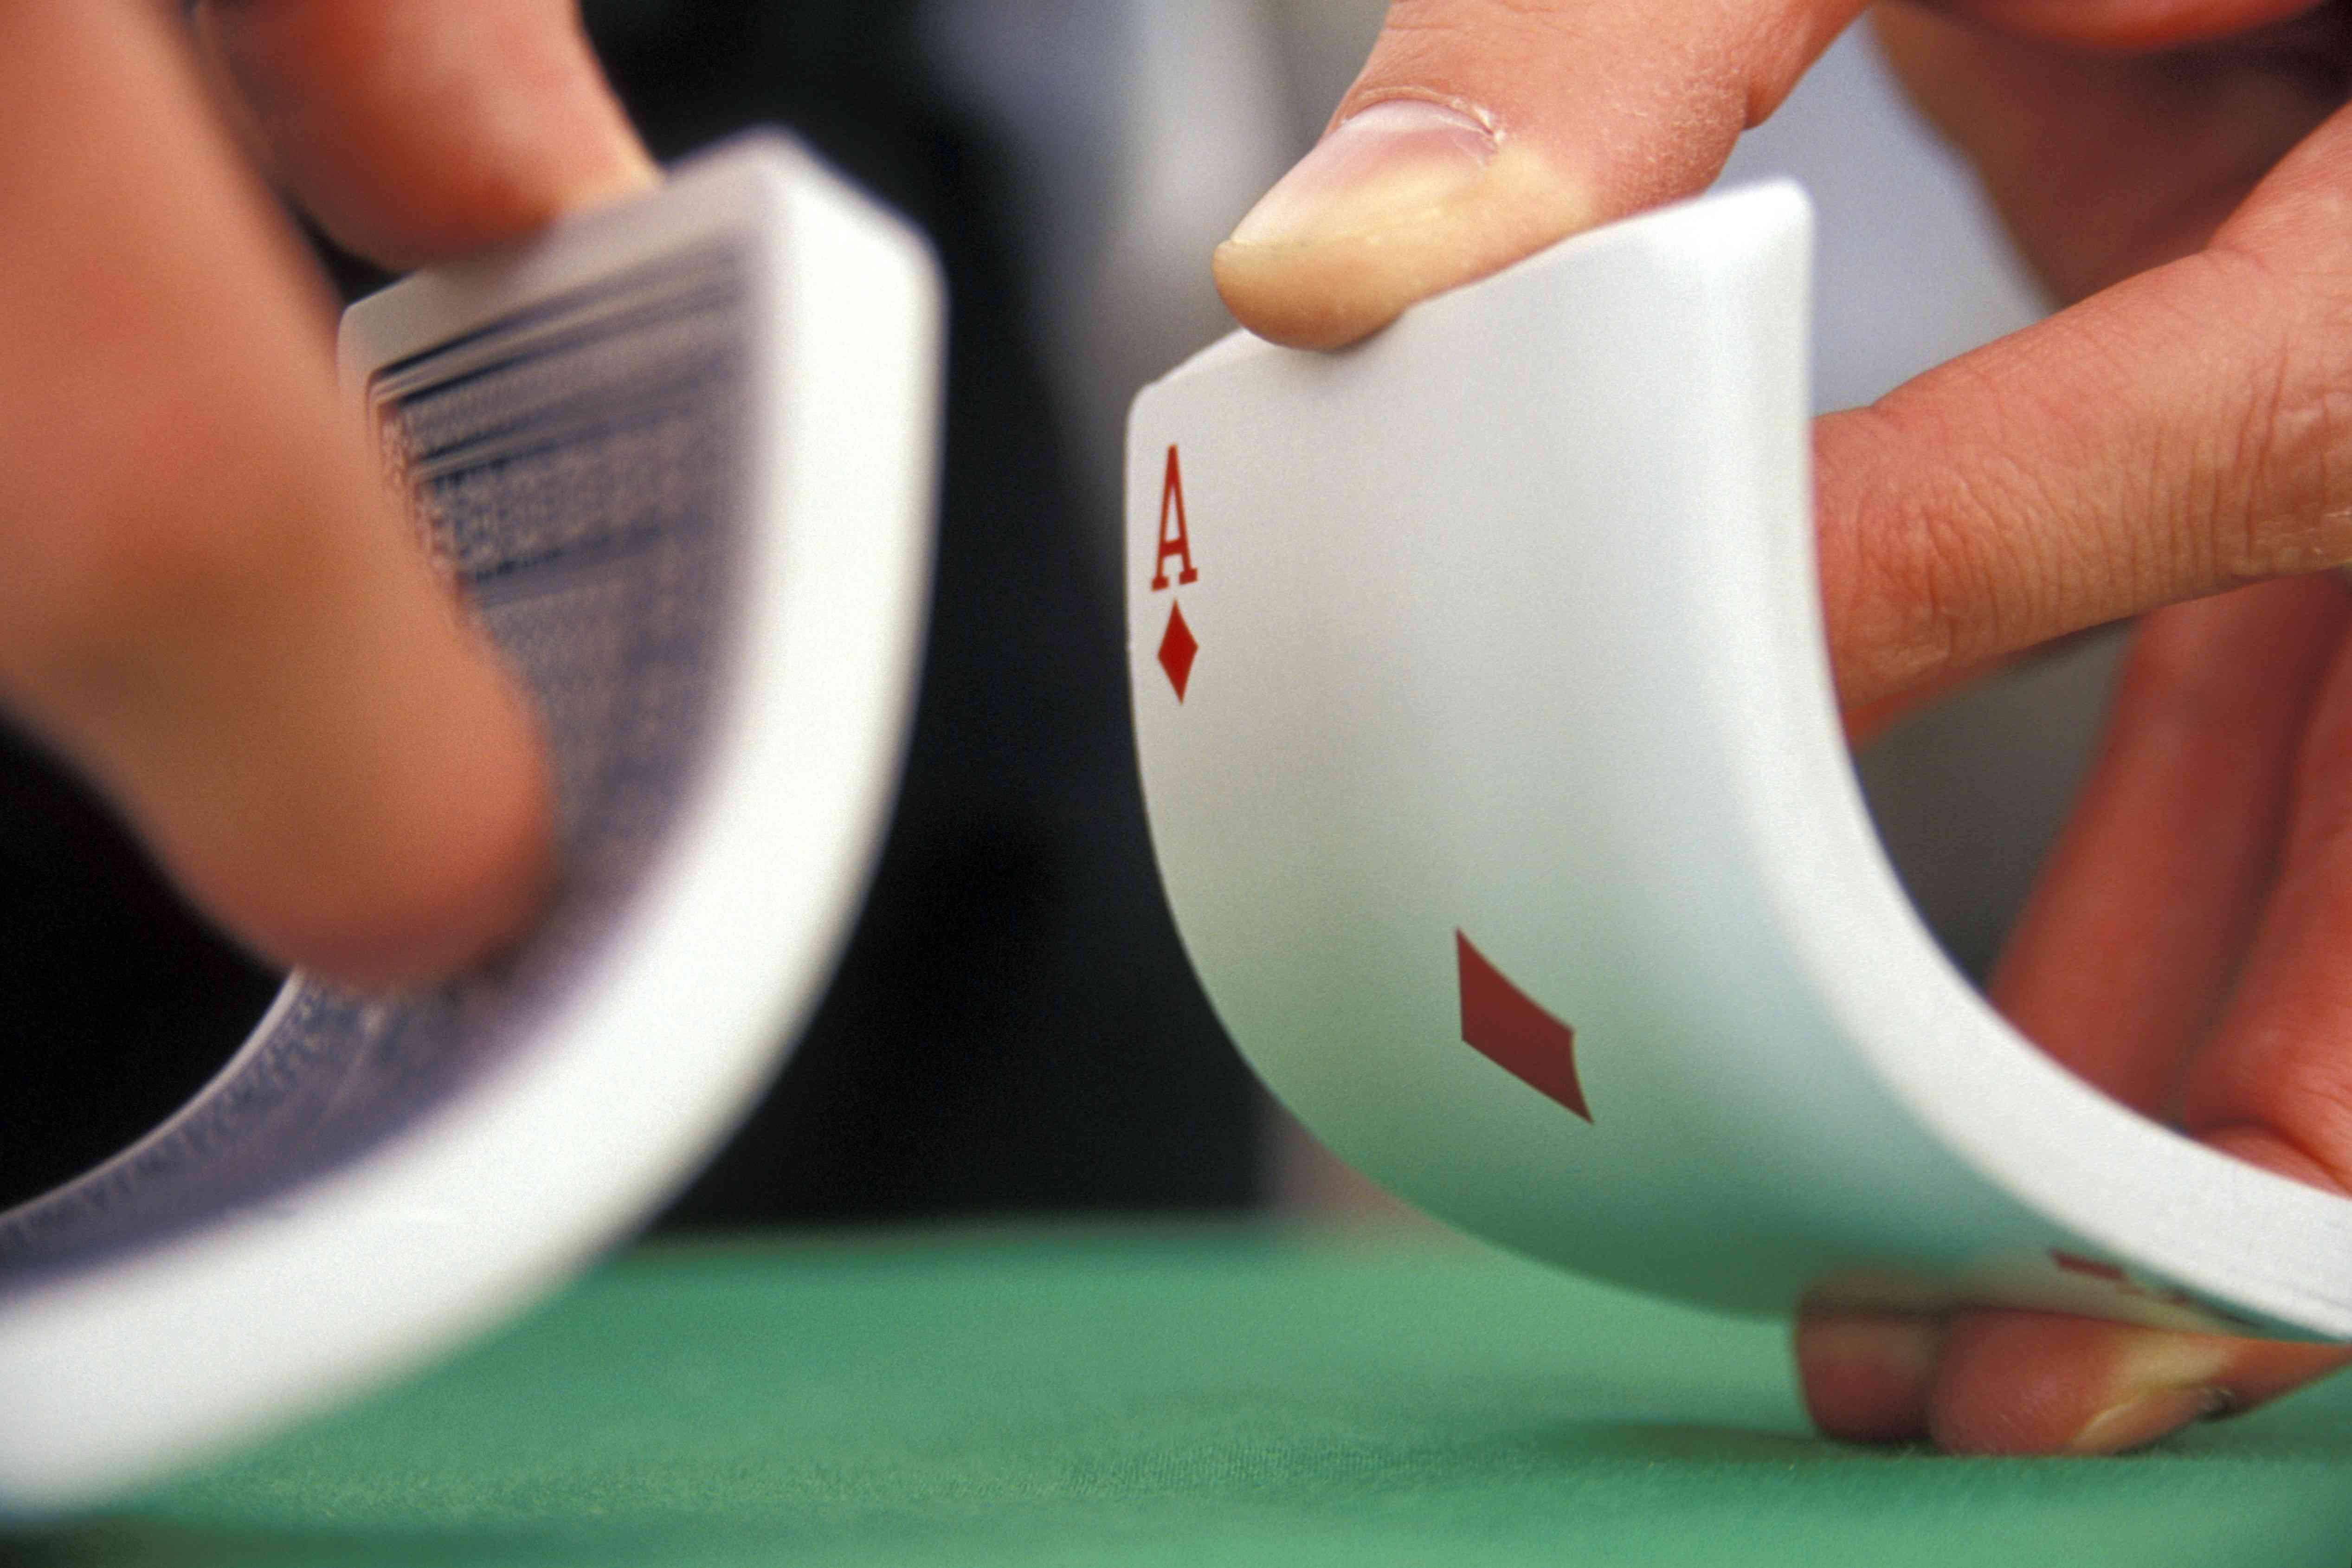 Bow the cards before as you're about to shuffle